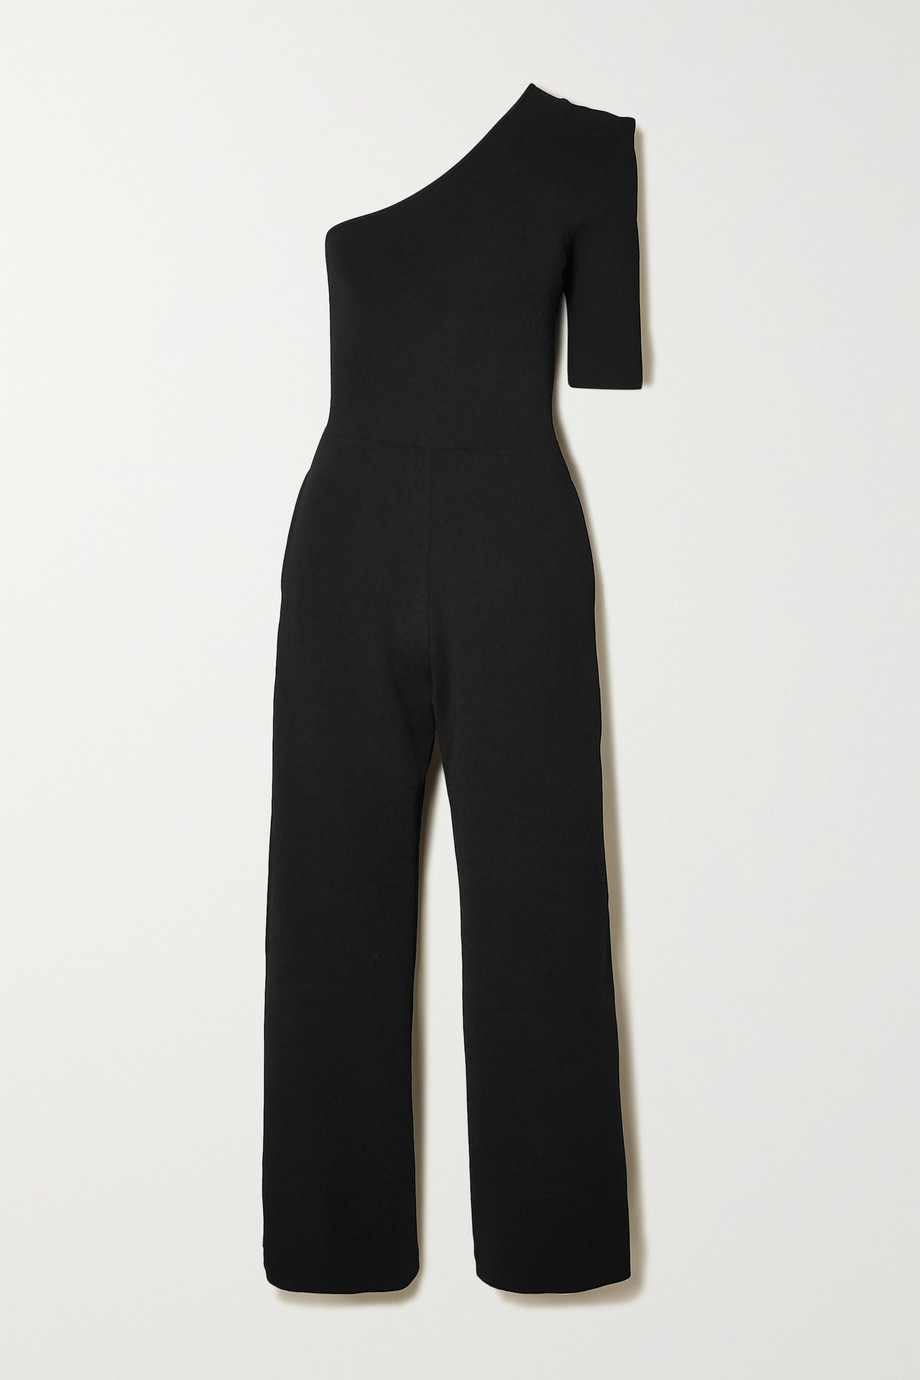 Stella McCartney + NET SUSTAIN one-sleeve stretch-knit jumpsuit